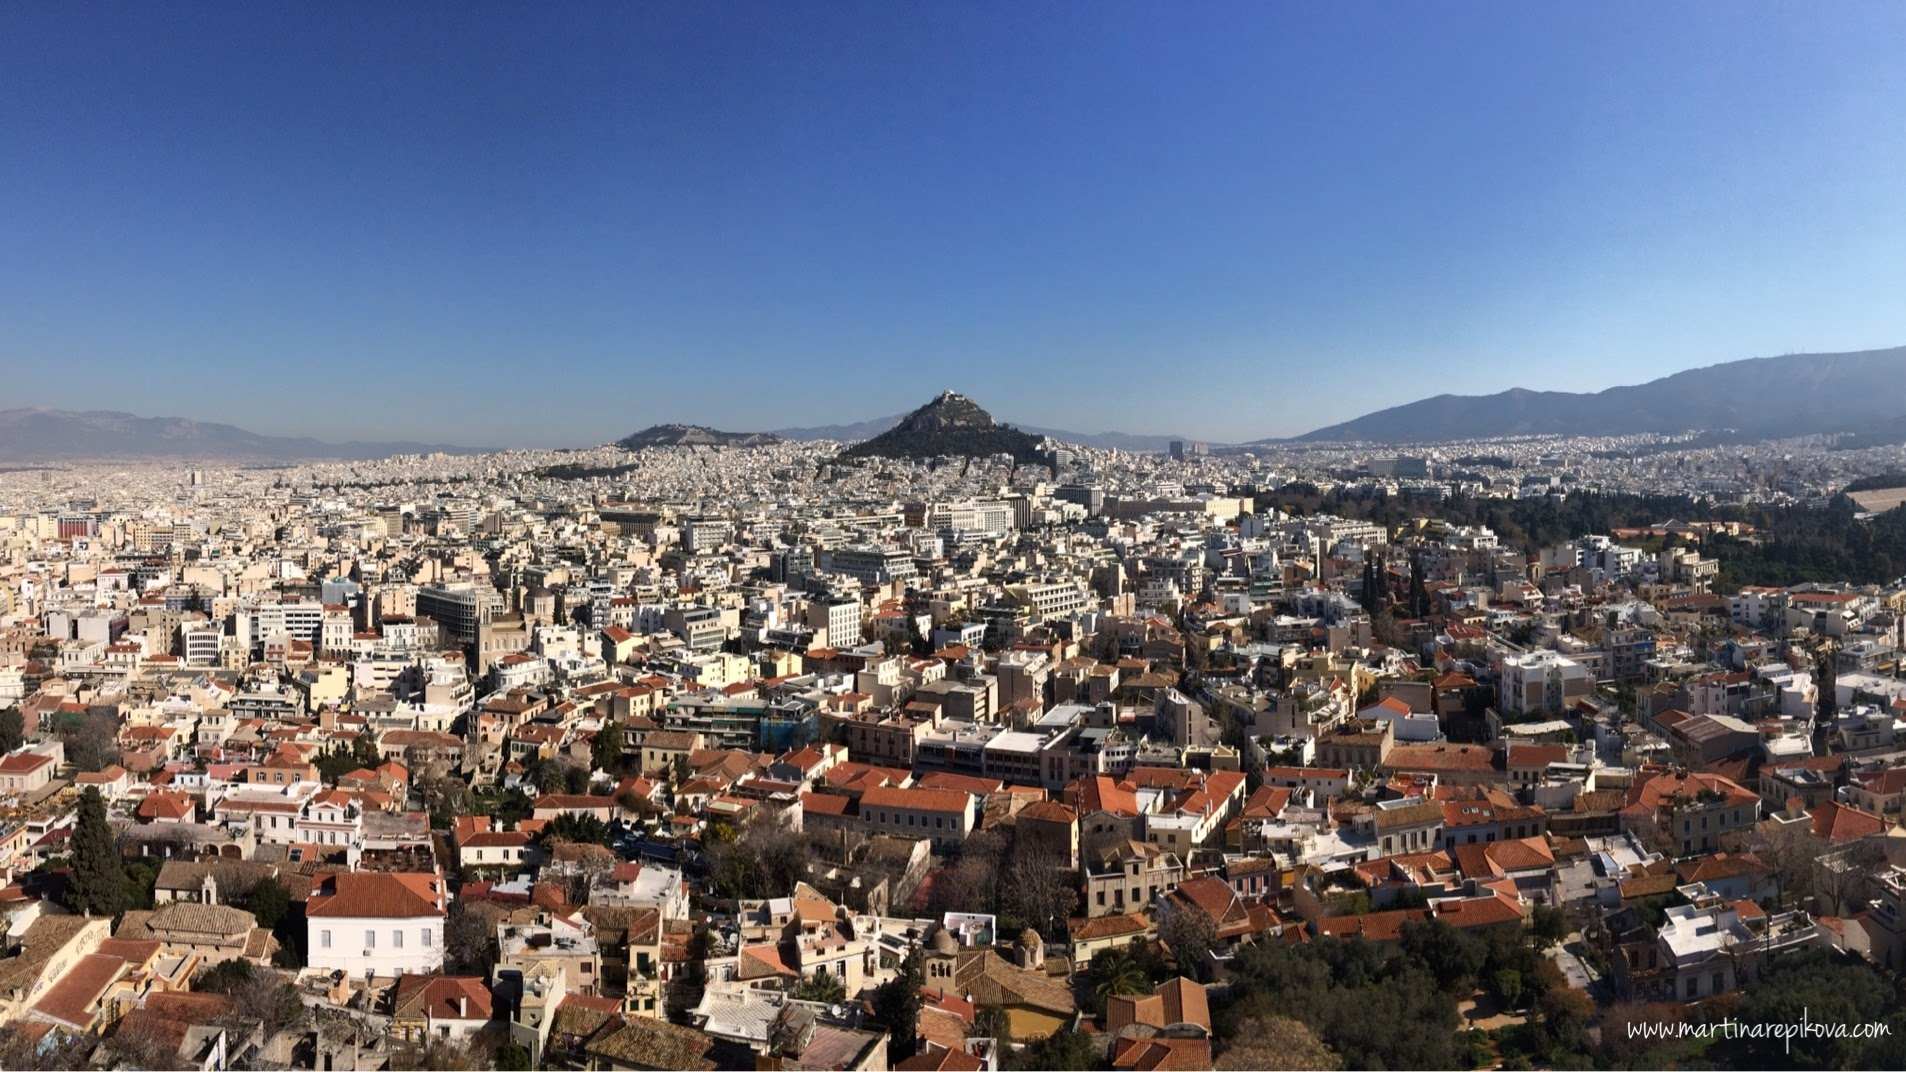 Lycabettus hill as seen from the Acropolis, Athens, Greece